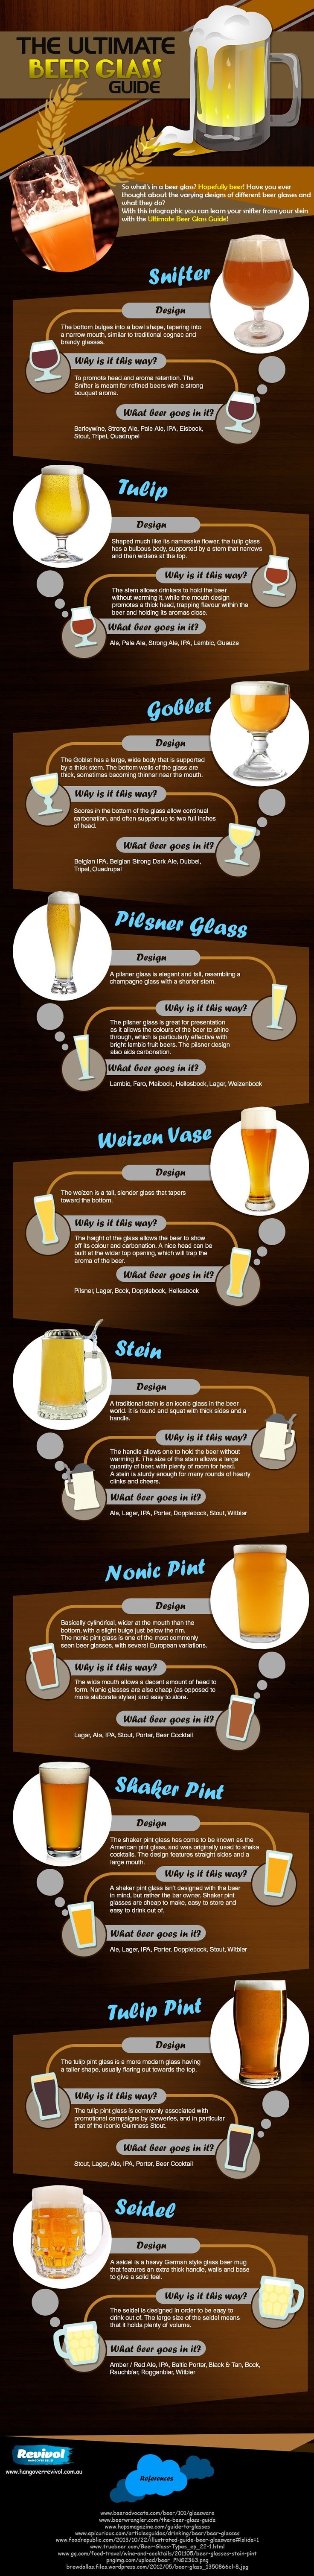 Today's beer drinker is more refined. You enjoy the wider variety that the craft beer industry supplies as it continues to boom. While many drink…